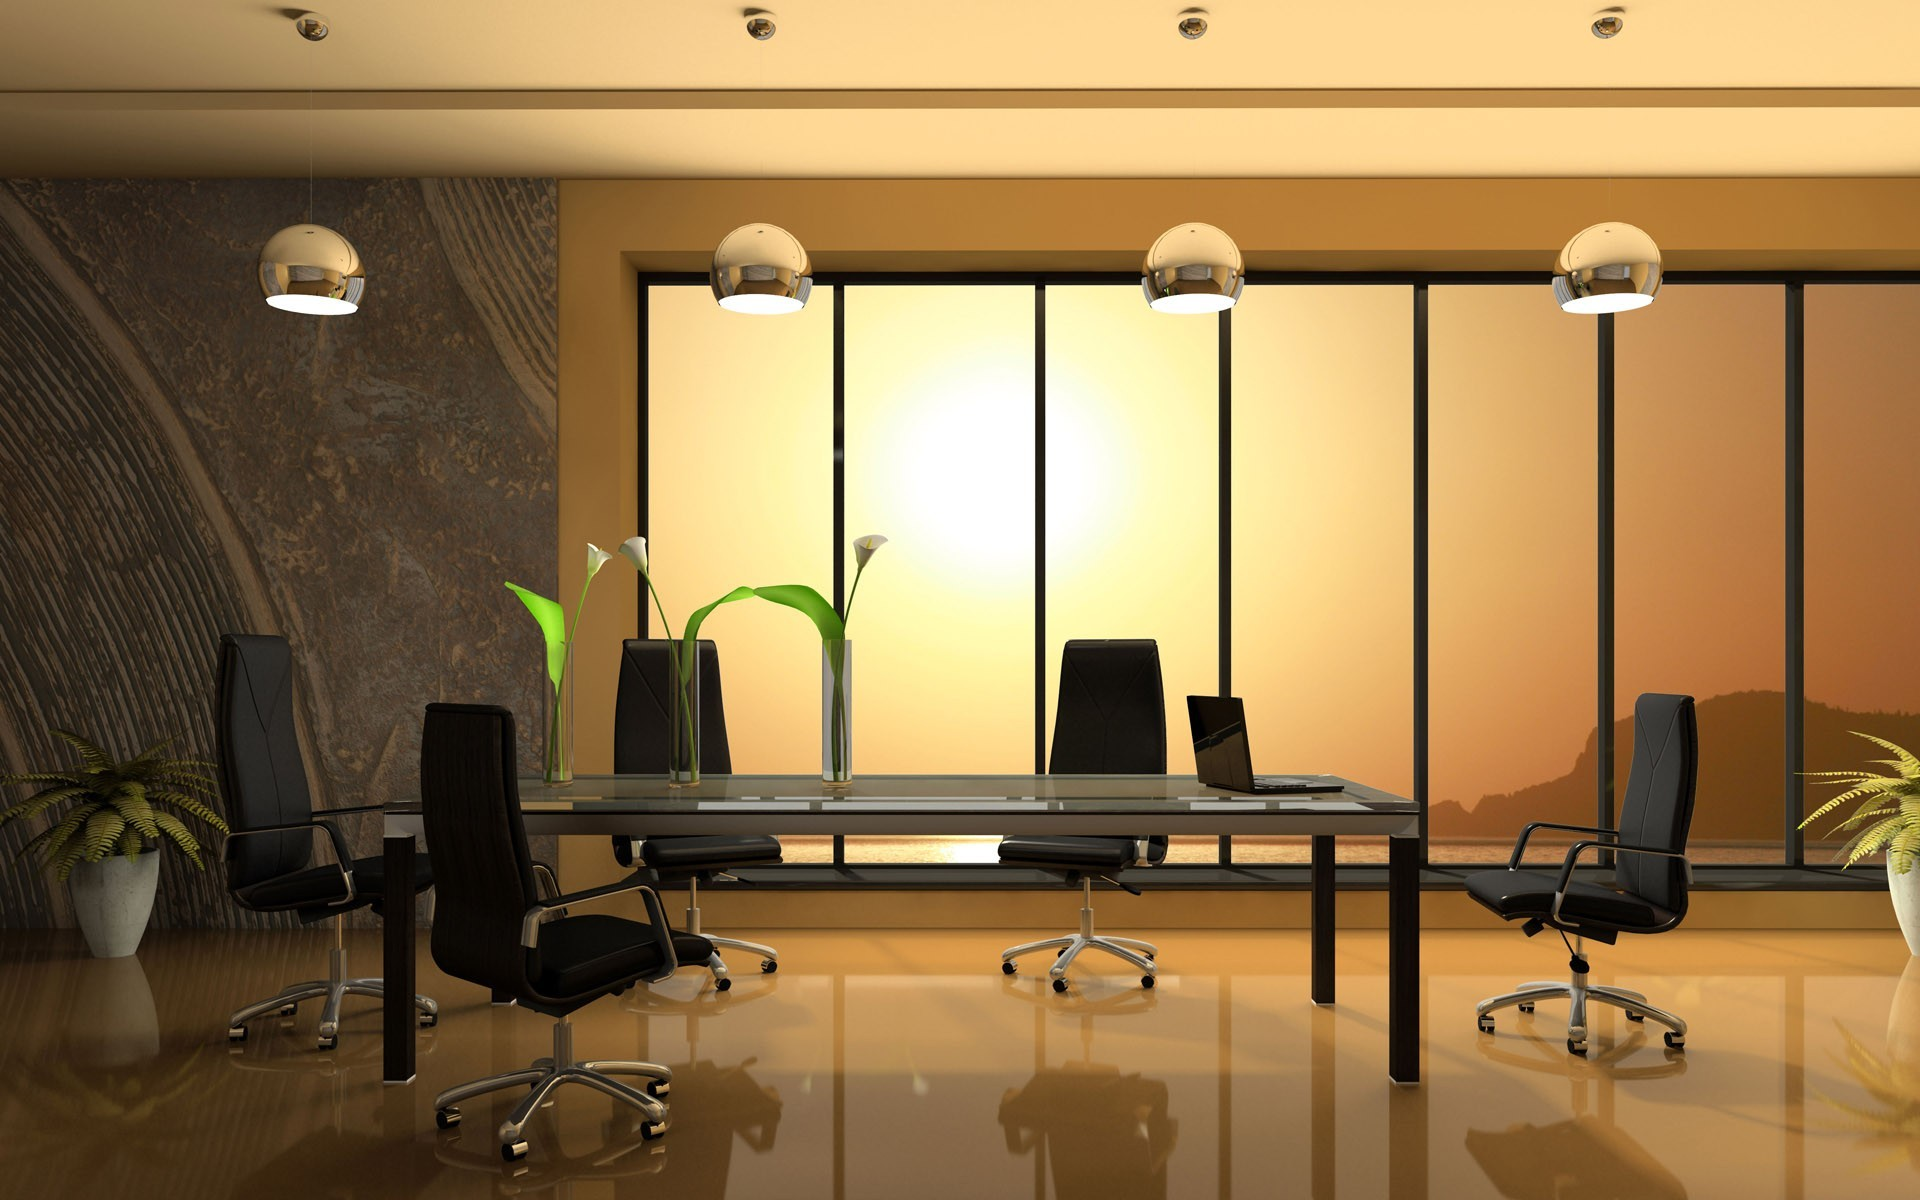 Office interior design wallpaper 138 Office interior decorating ideas pictures